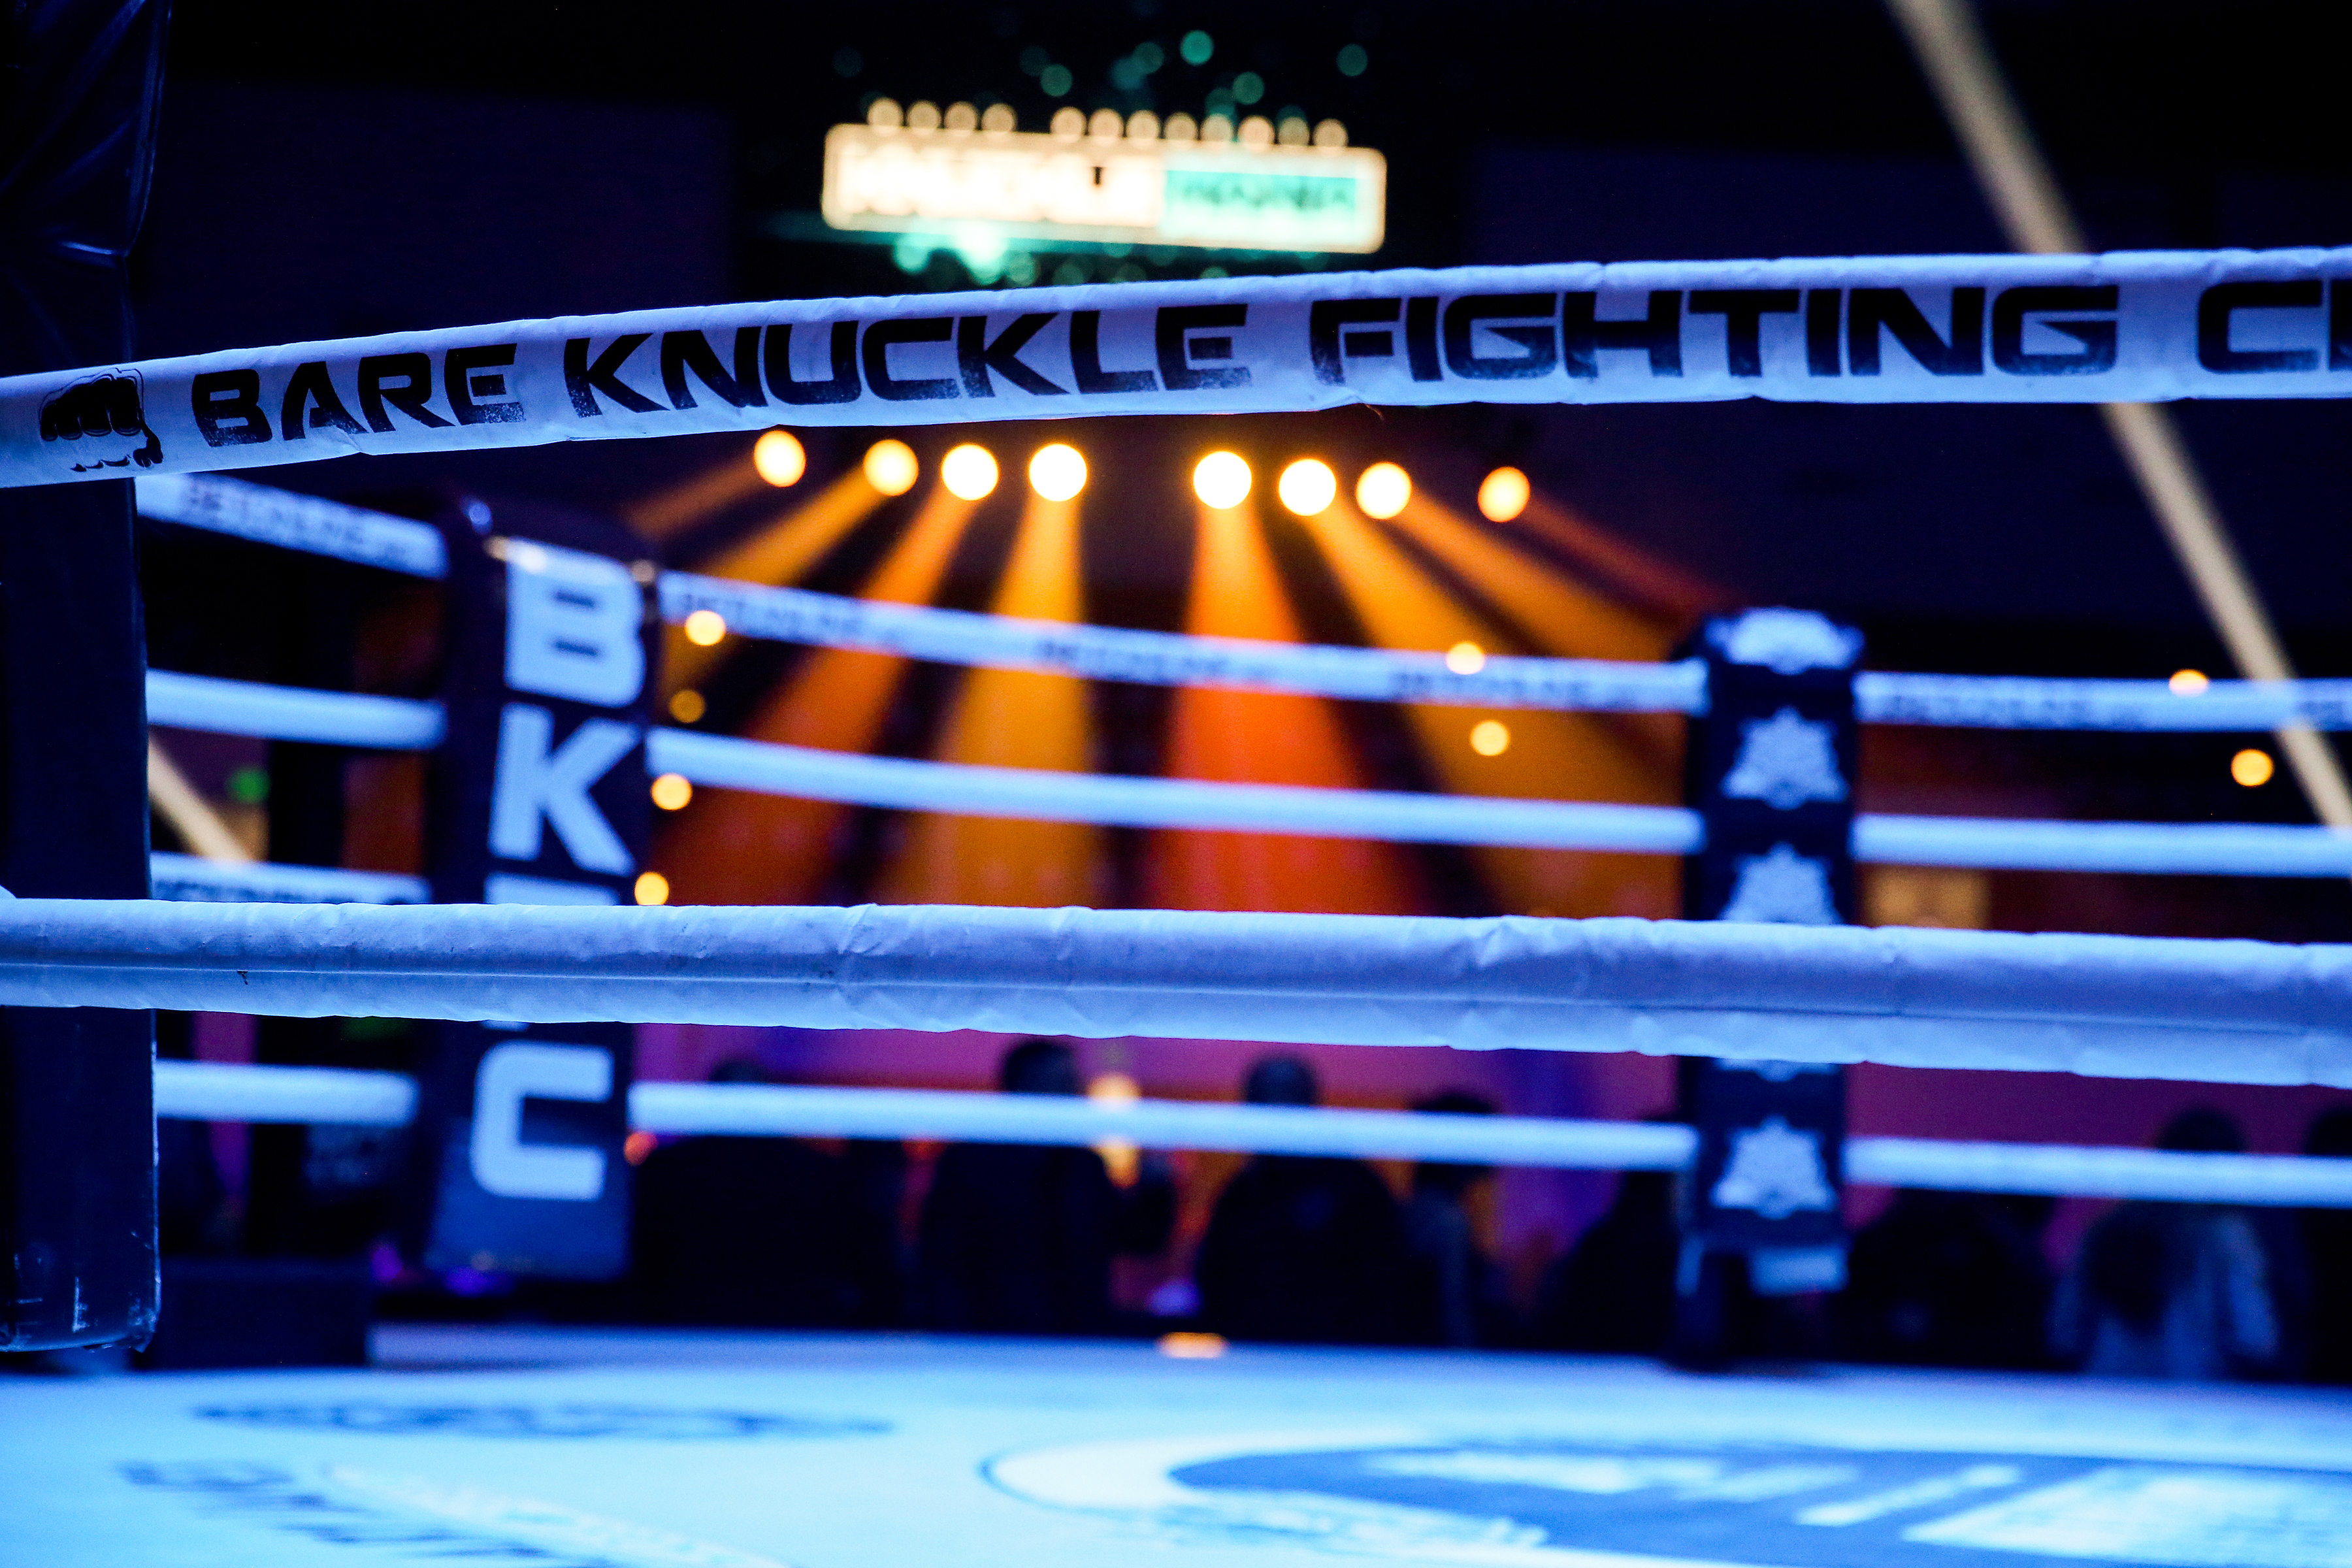 BKFC held its most recent event on Friday night.